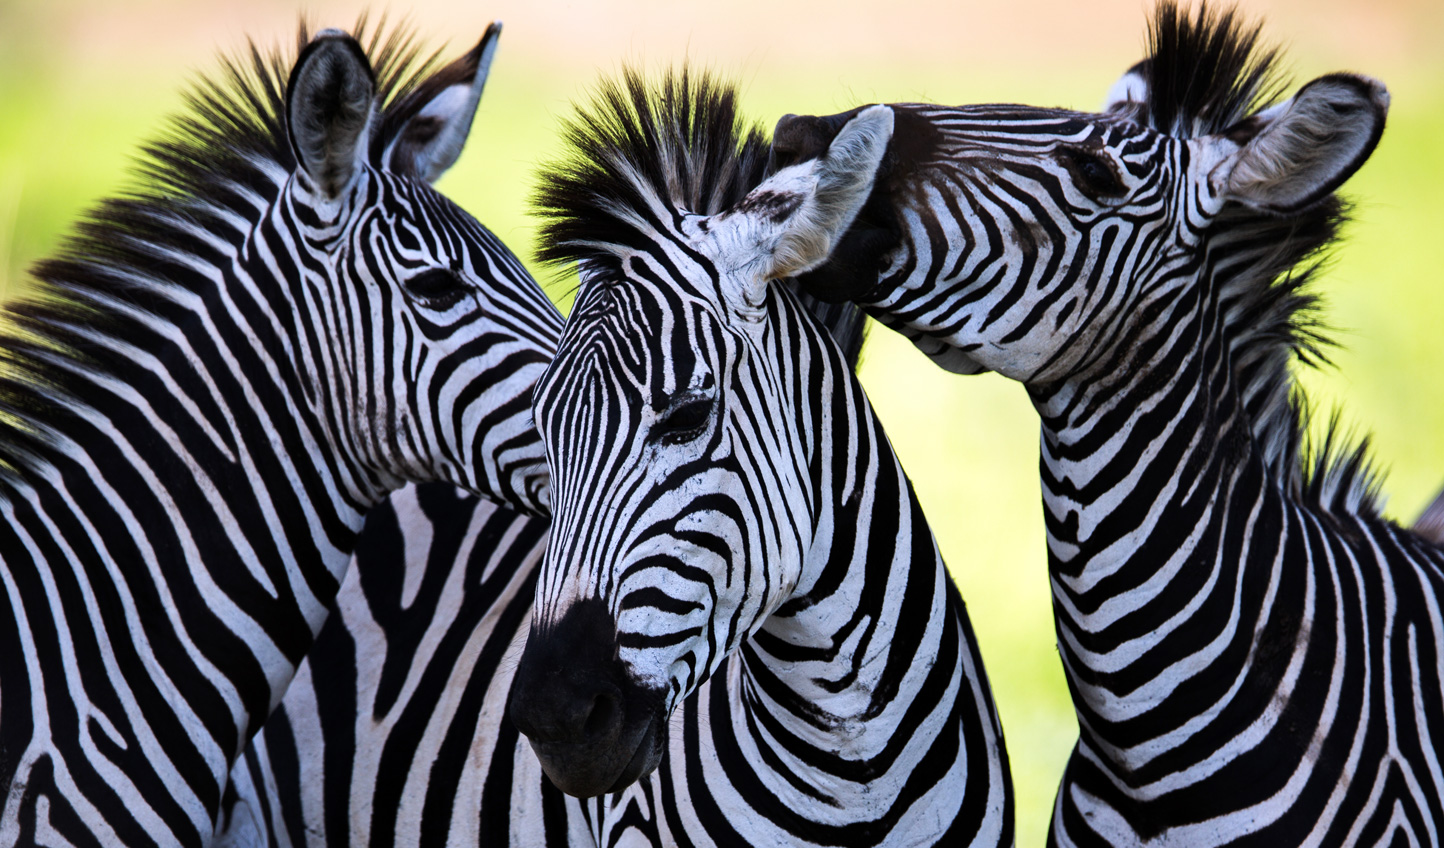 Laying eyes on a herd of zebras is sure to put a smile on the kids' faces